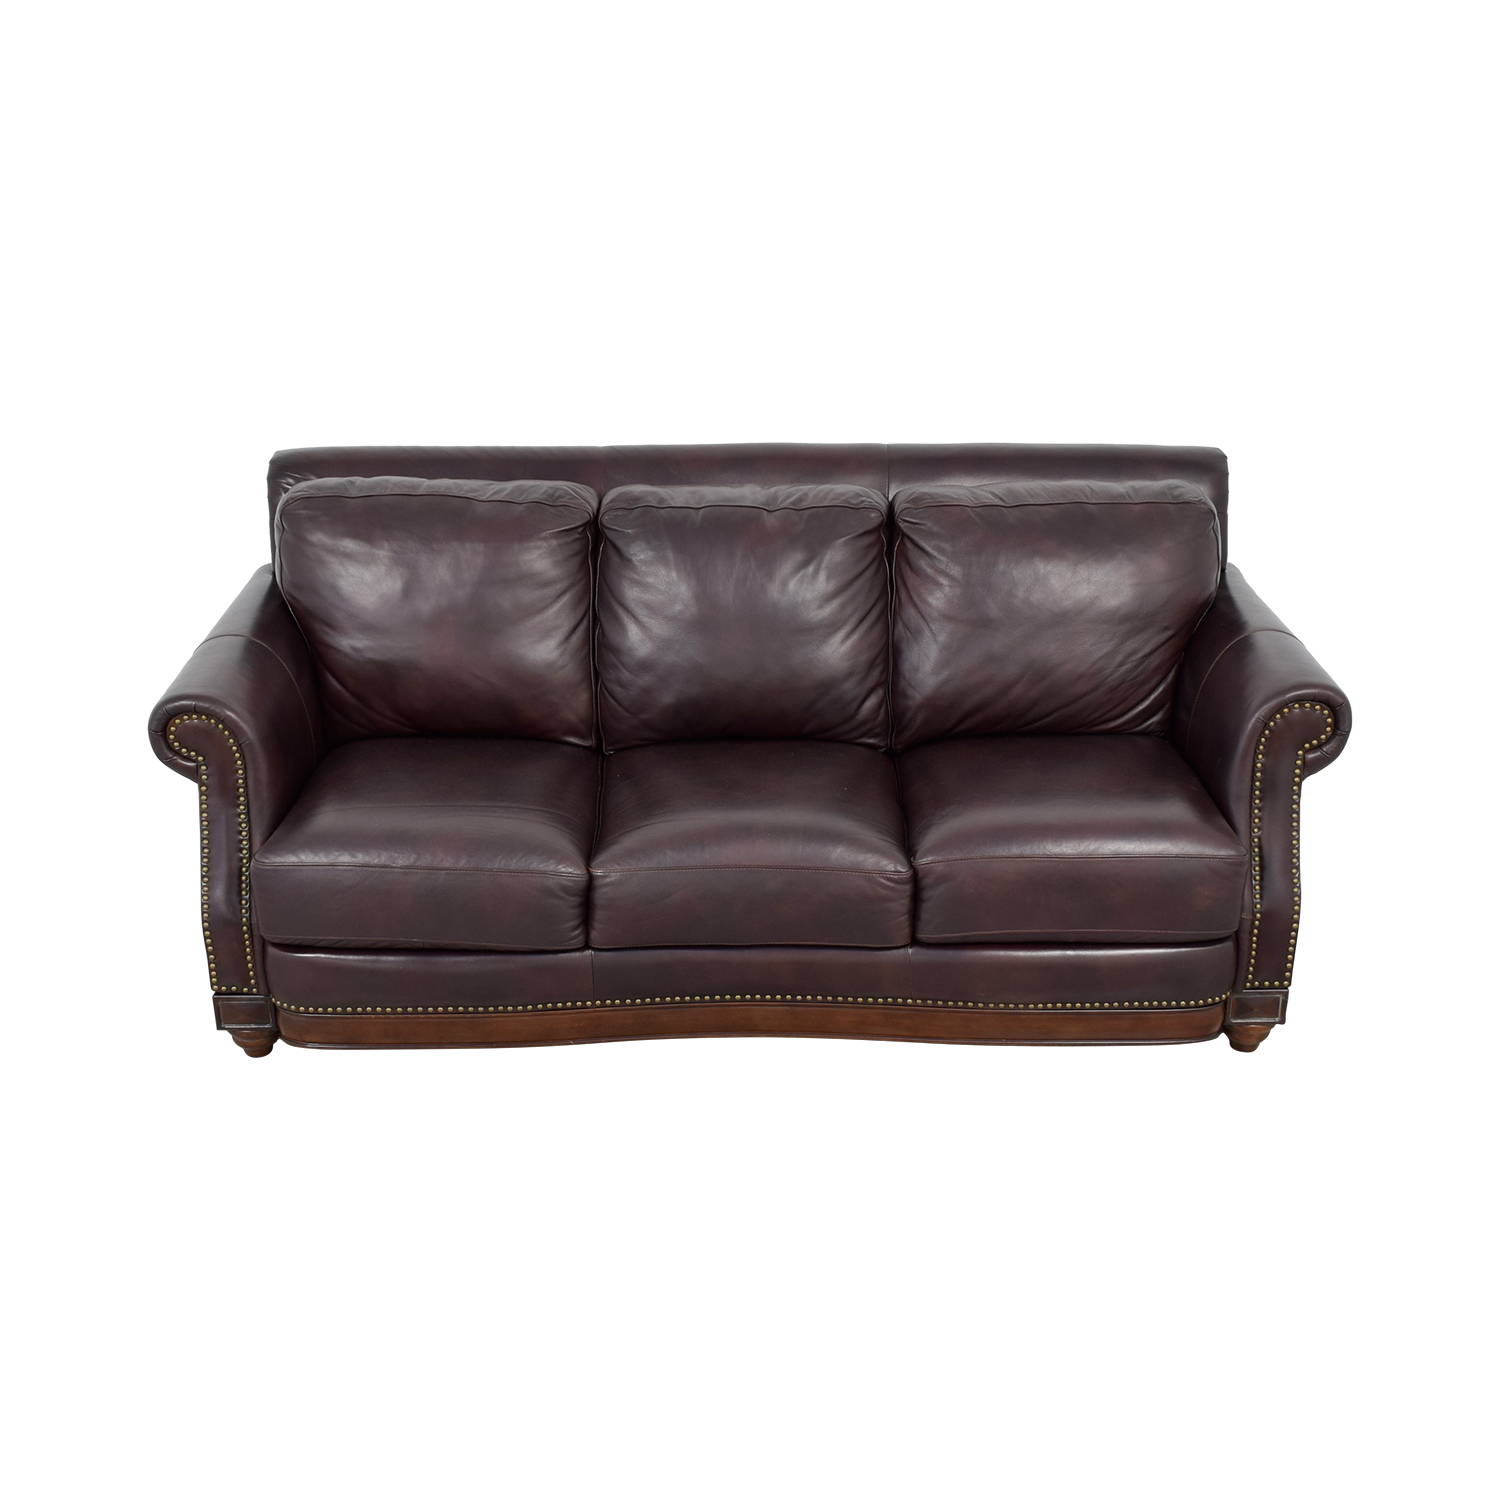 Raymour & Flanigan Brown Leather Nailhead Sofa sale